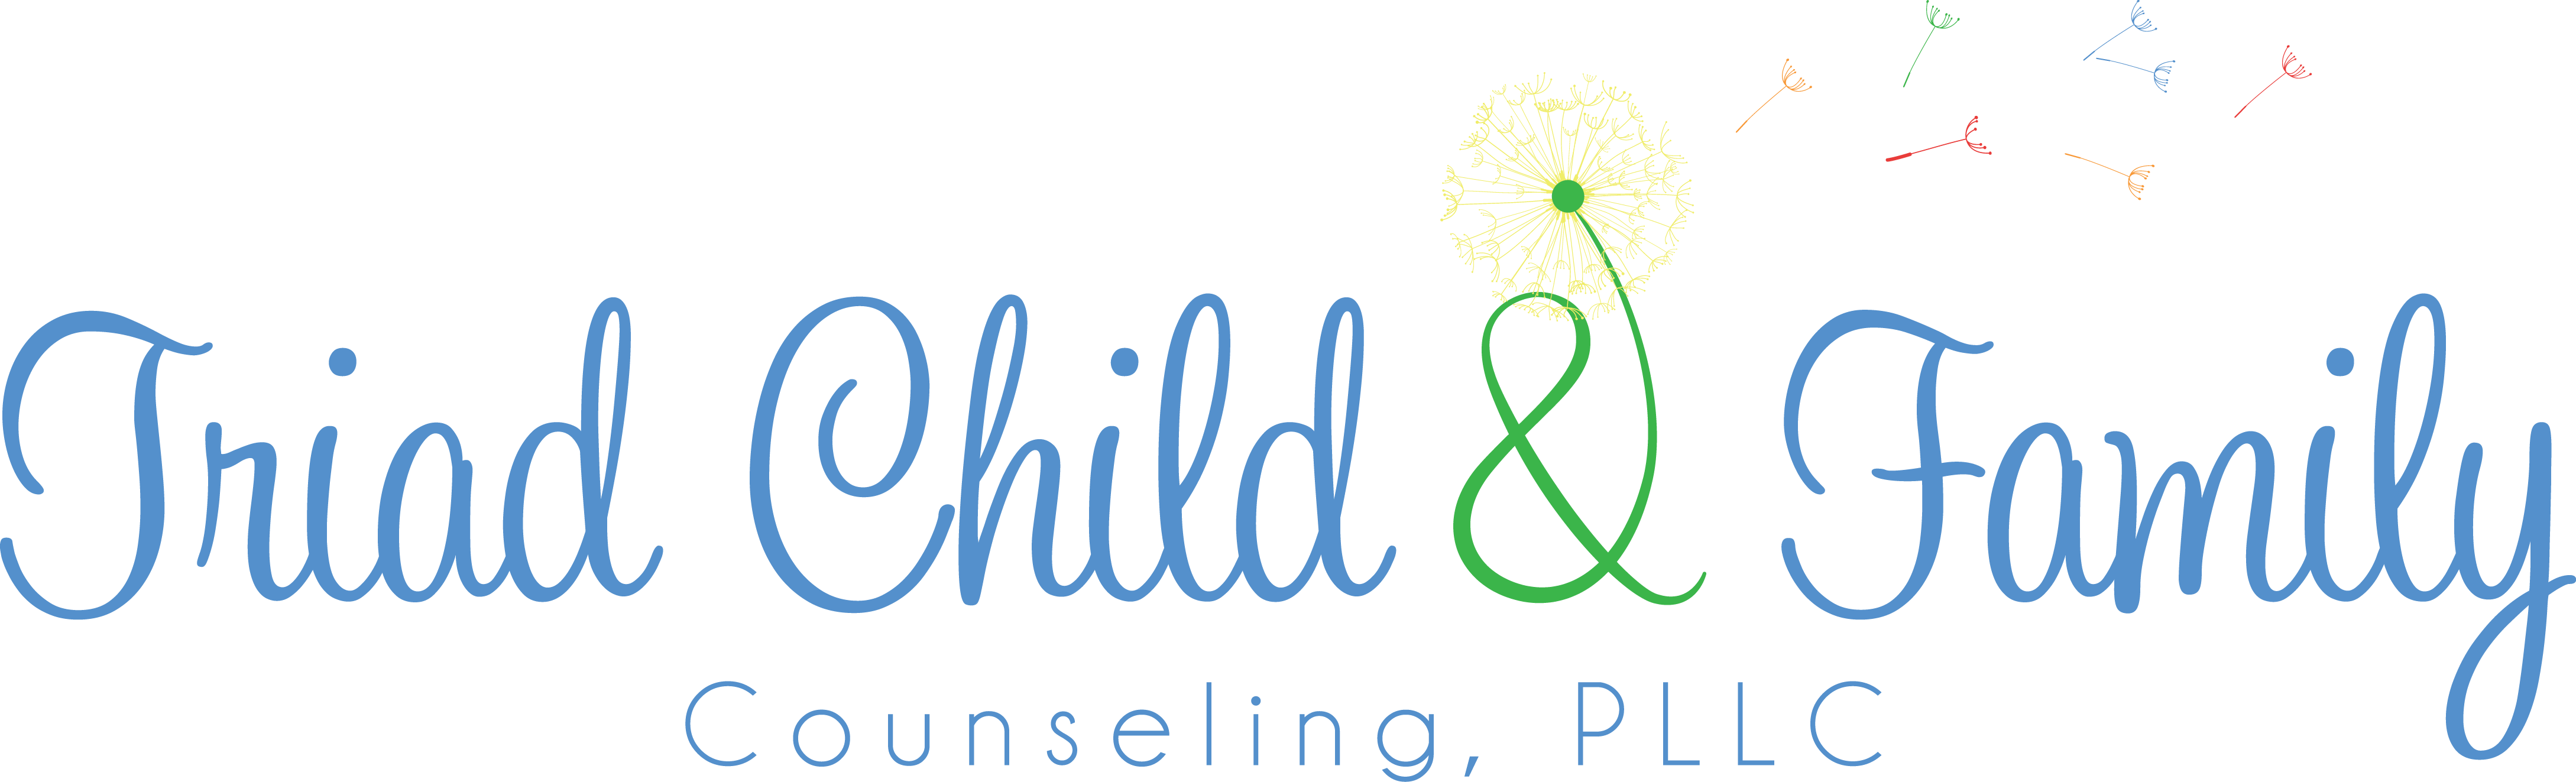 Triad Child and Family Counseling